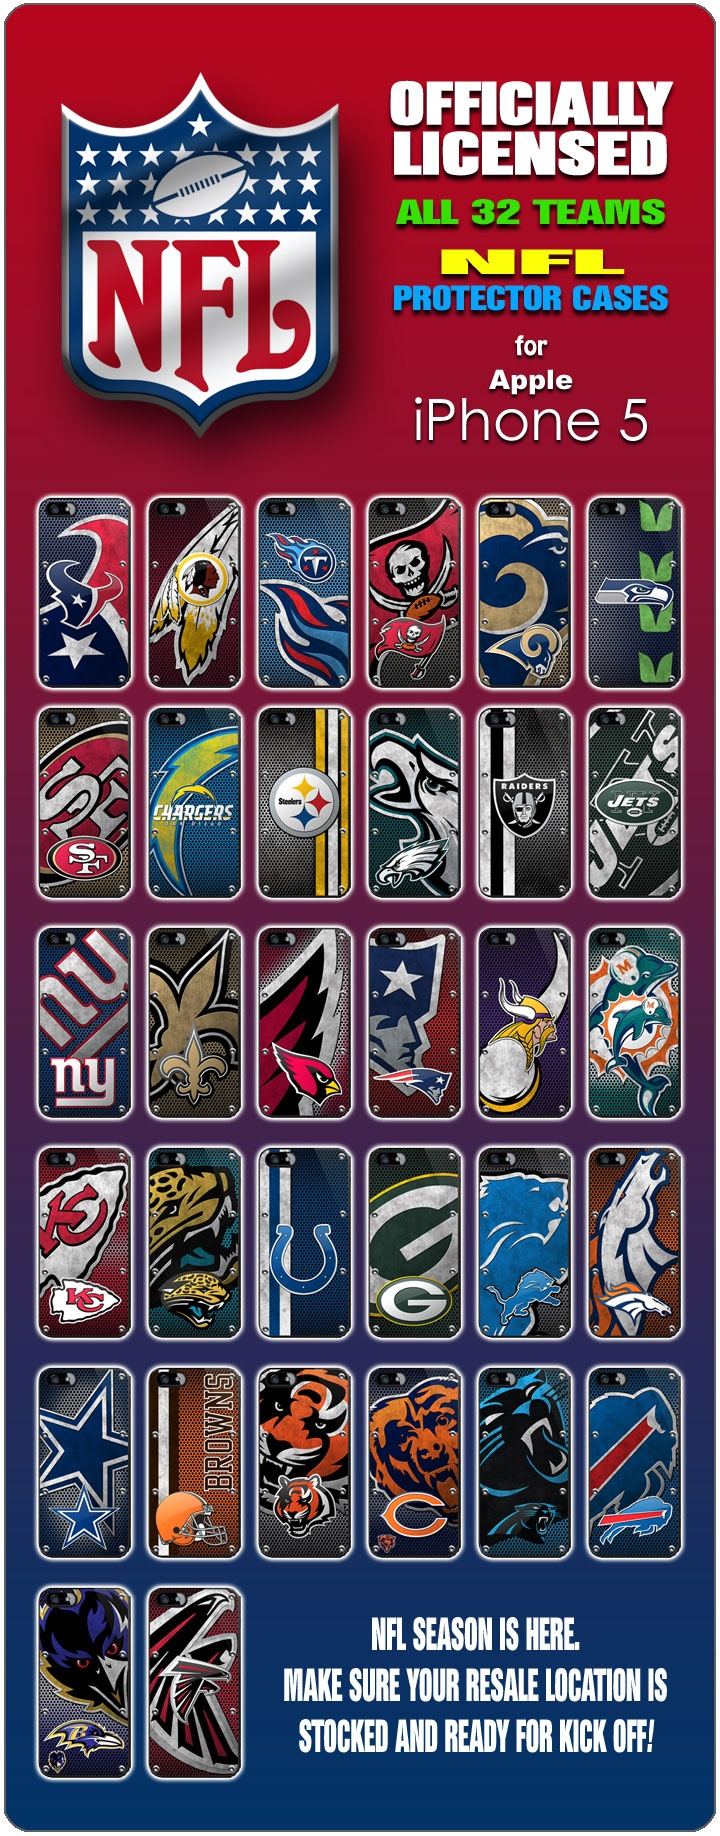 TOUCHDOWN! NFL cases. So cool. Check out the Buccaneers vs. Vikings game tonight!